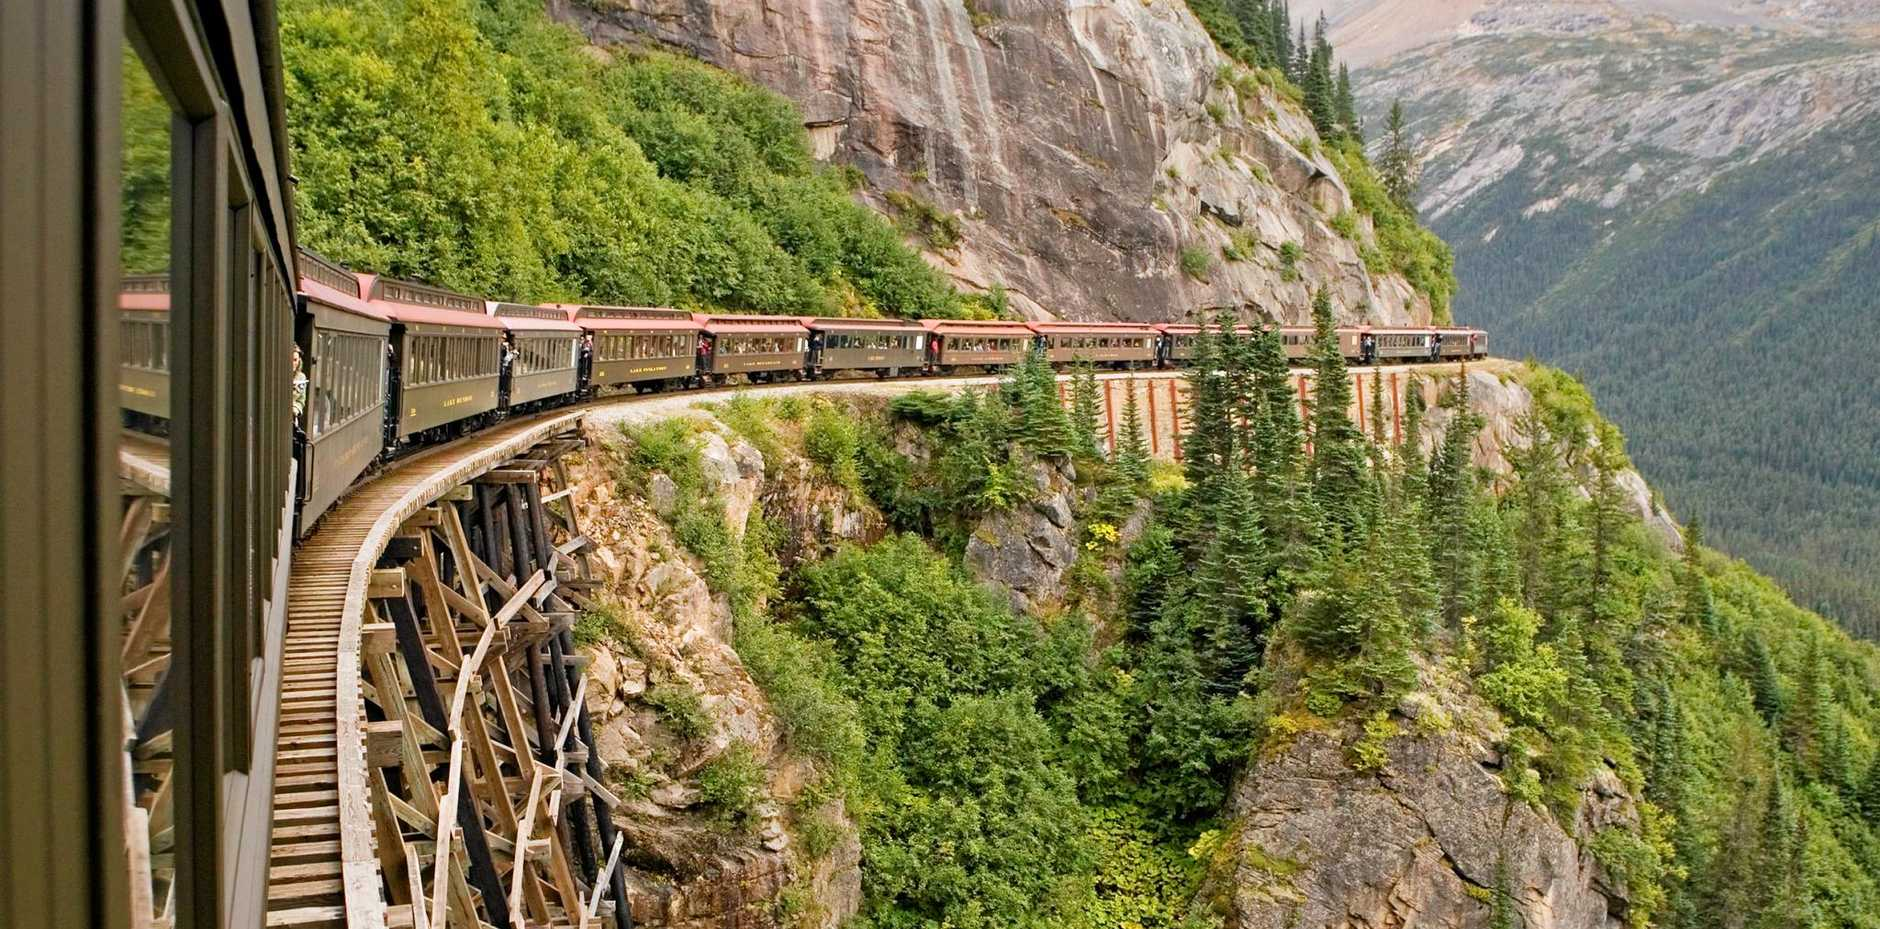 In terms of engineering marvel, the White Pass and Yukon Route is up there with the Panama Canal, the Eiffel Tower and the Statue of Liberty.